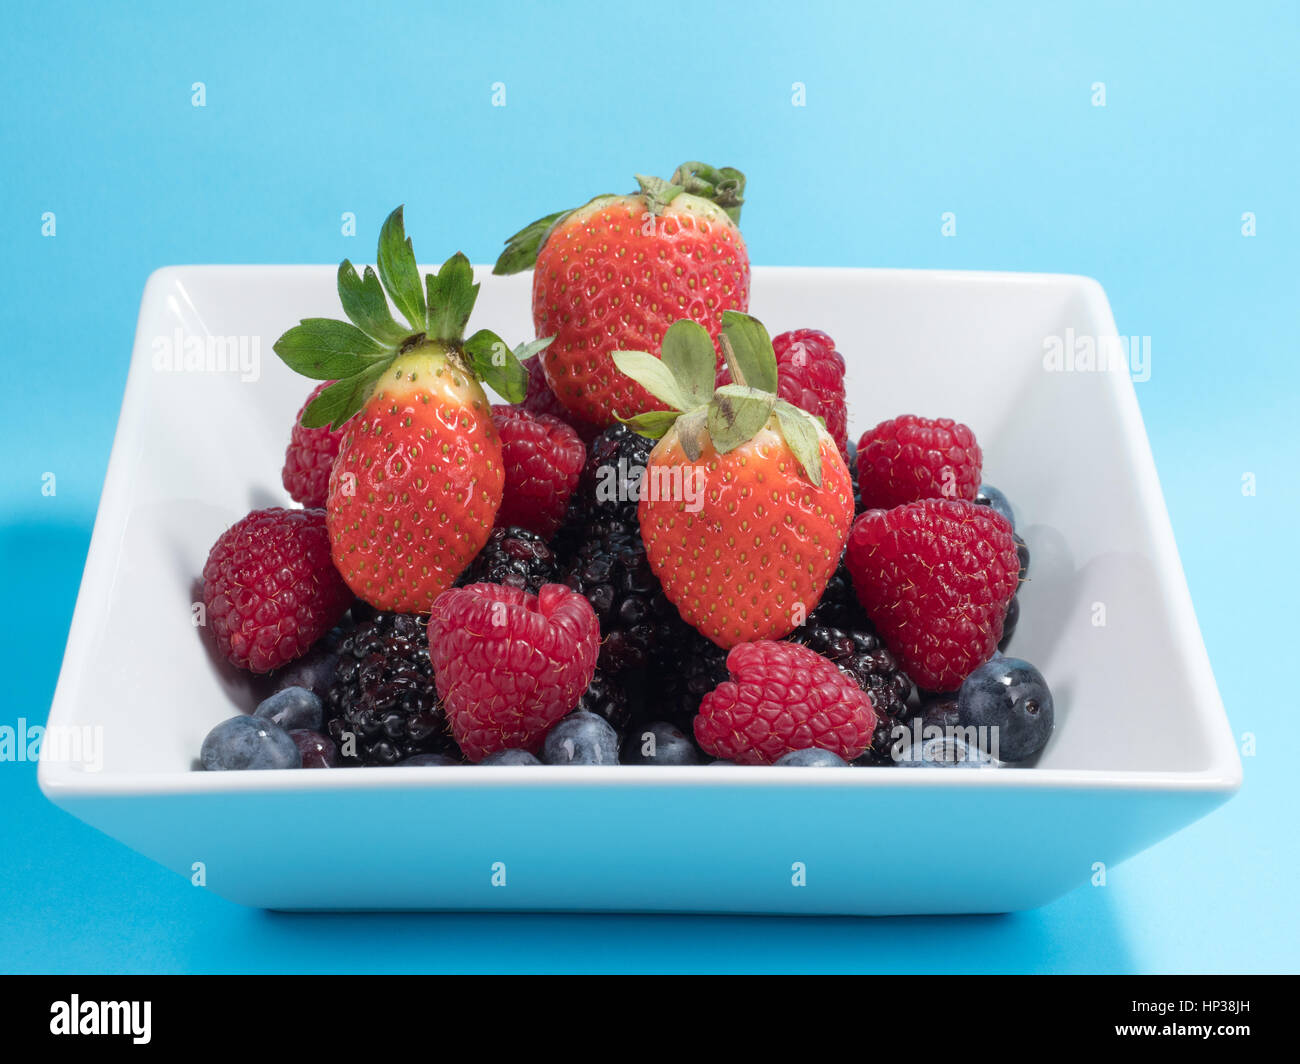 Mixed winter fruit of blueberries, raspberries, blackberrys and stawberries in a white bowl on a blue background - Stock Image